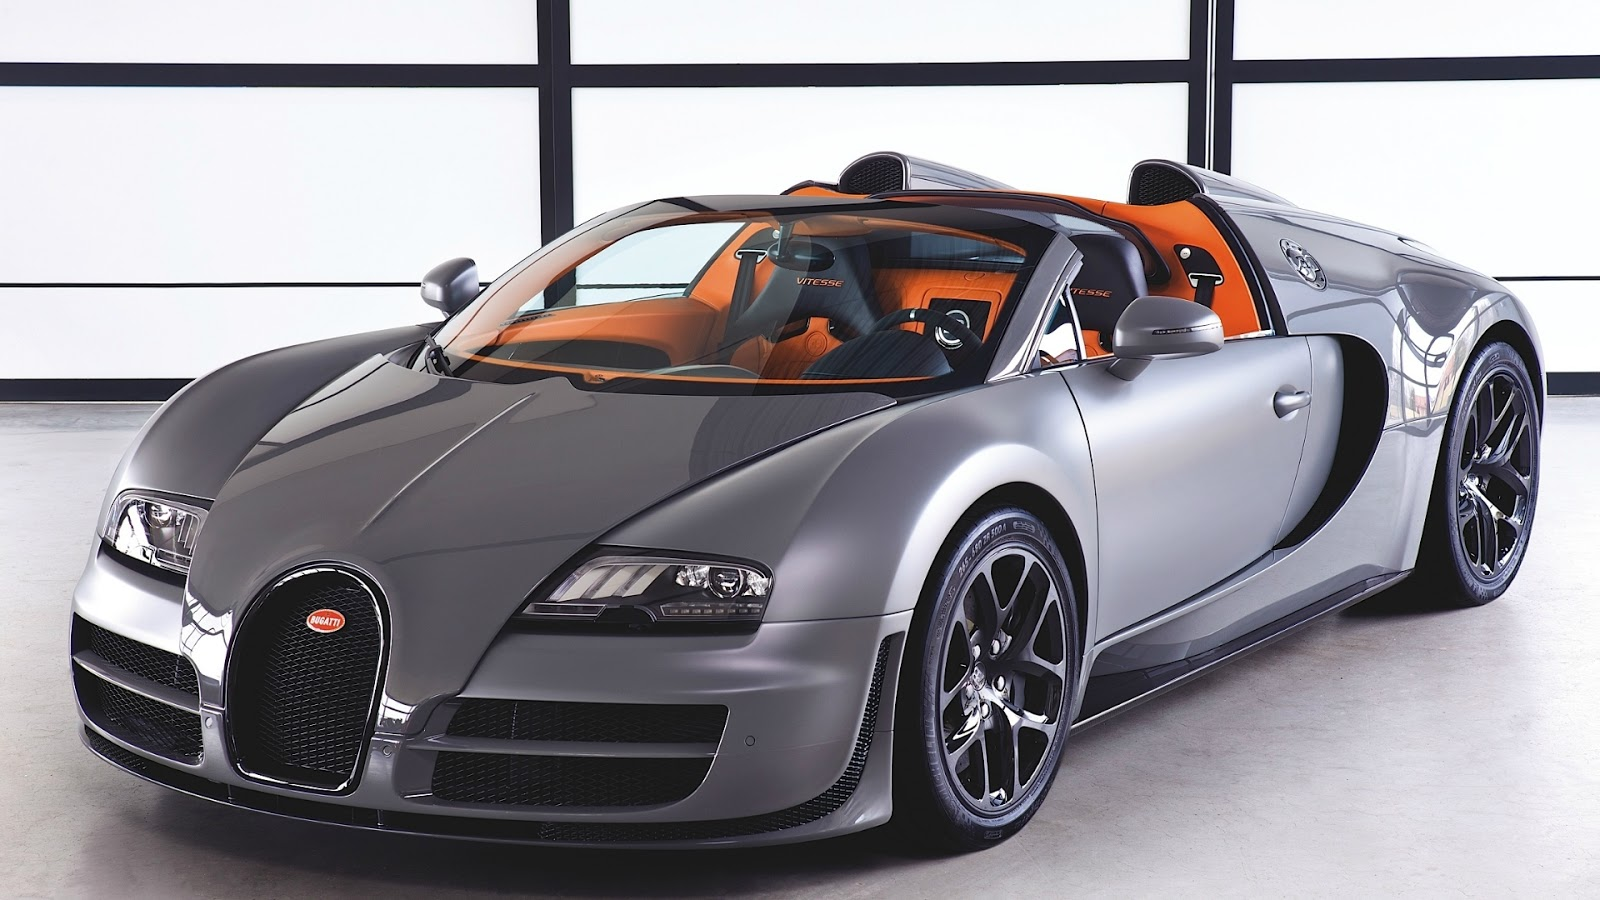 bugatti veyron hd wallpapers top hd wallpapers. Black Bedroom Furniture Sets. Home Design Ideas